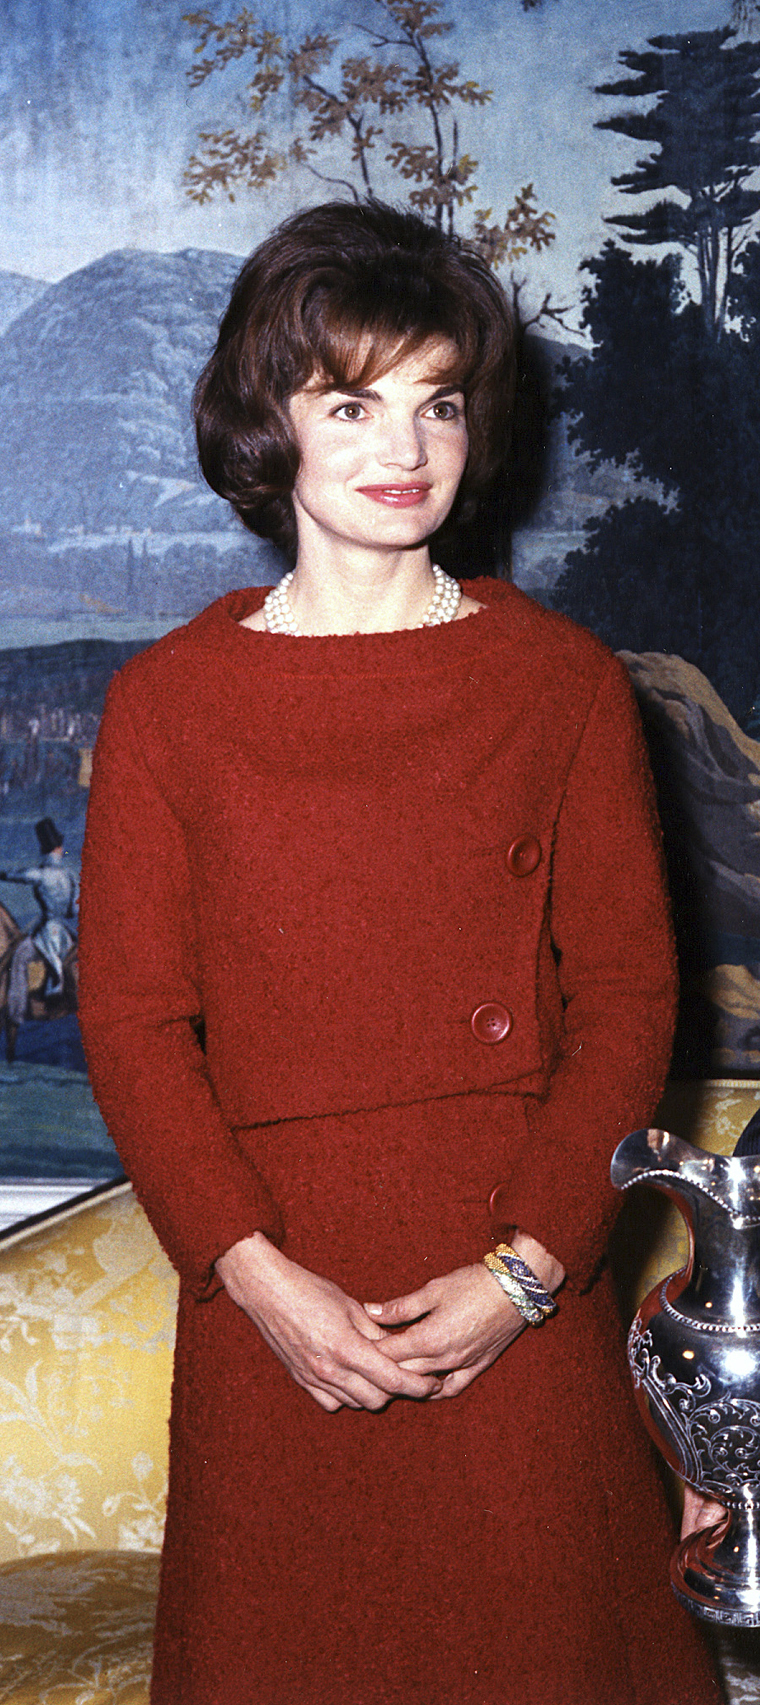 Mrs. Kennedy in the Diplomatic Reception Room, 05 December 1961. (John F. Kennedy Presidential Library and Museum, National Archives)